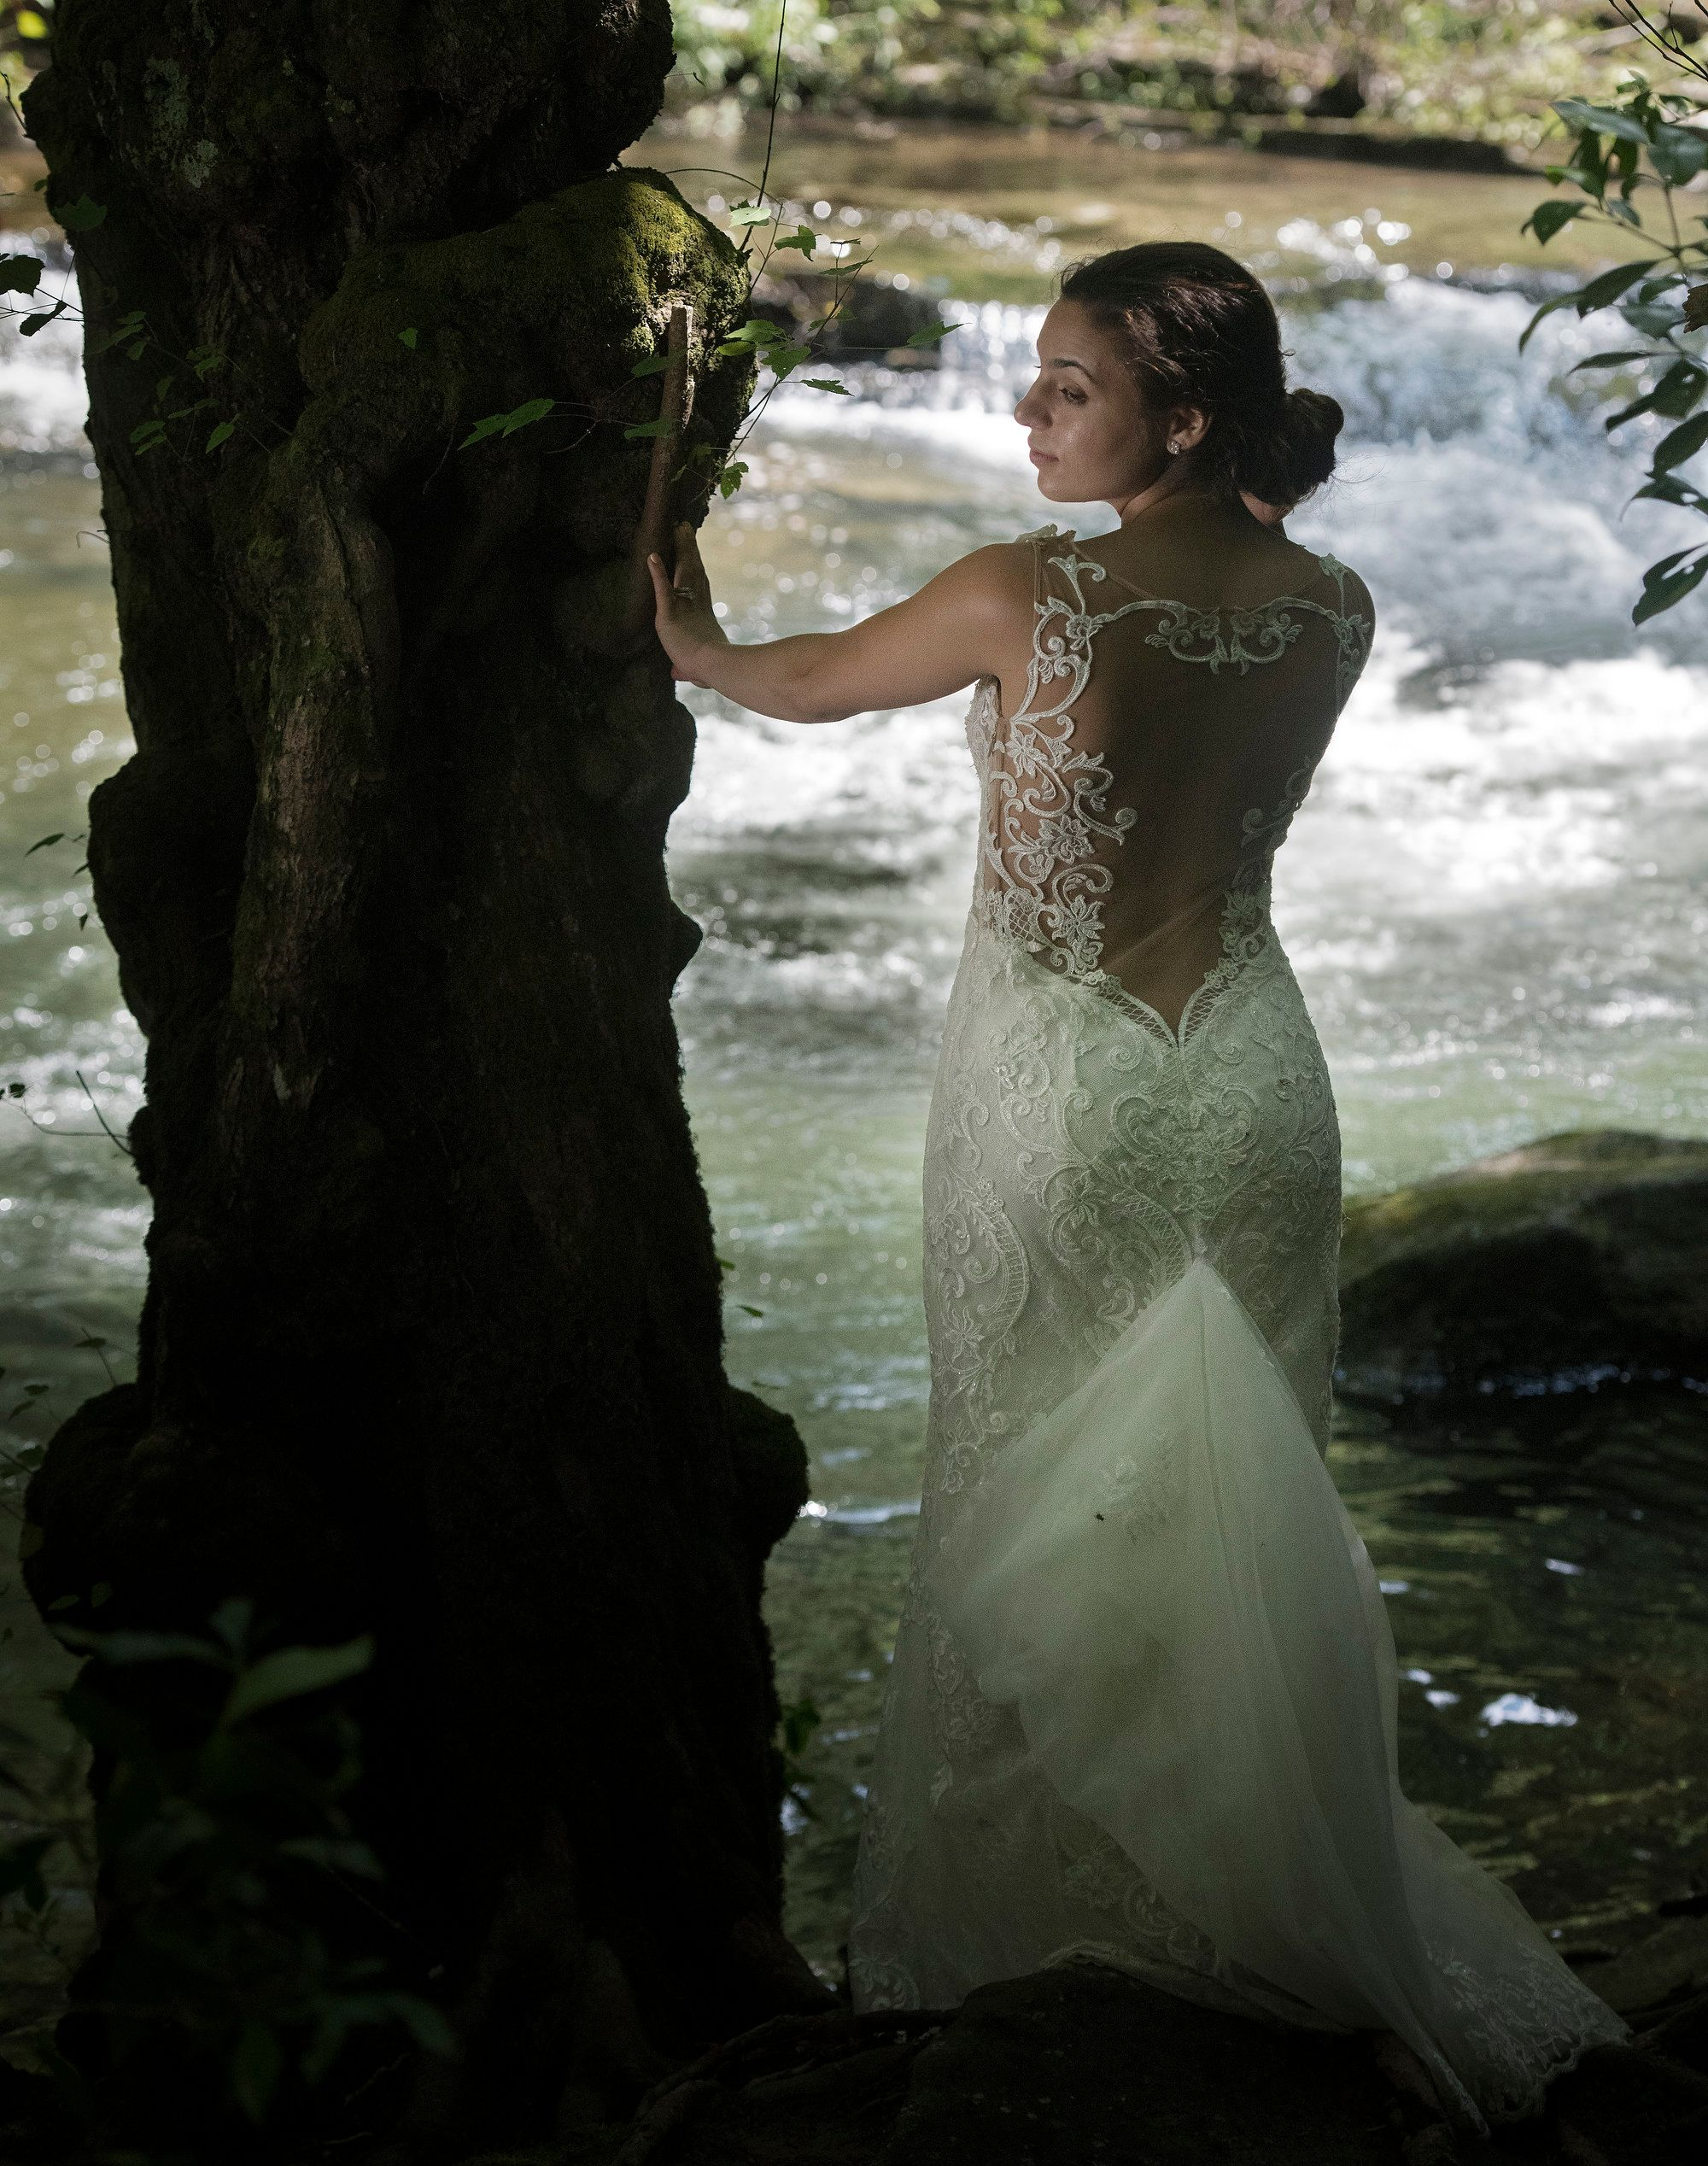 Into The Woods And The Bride's Natural Beauty